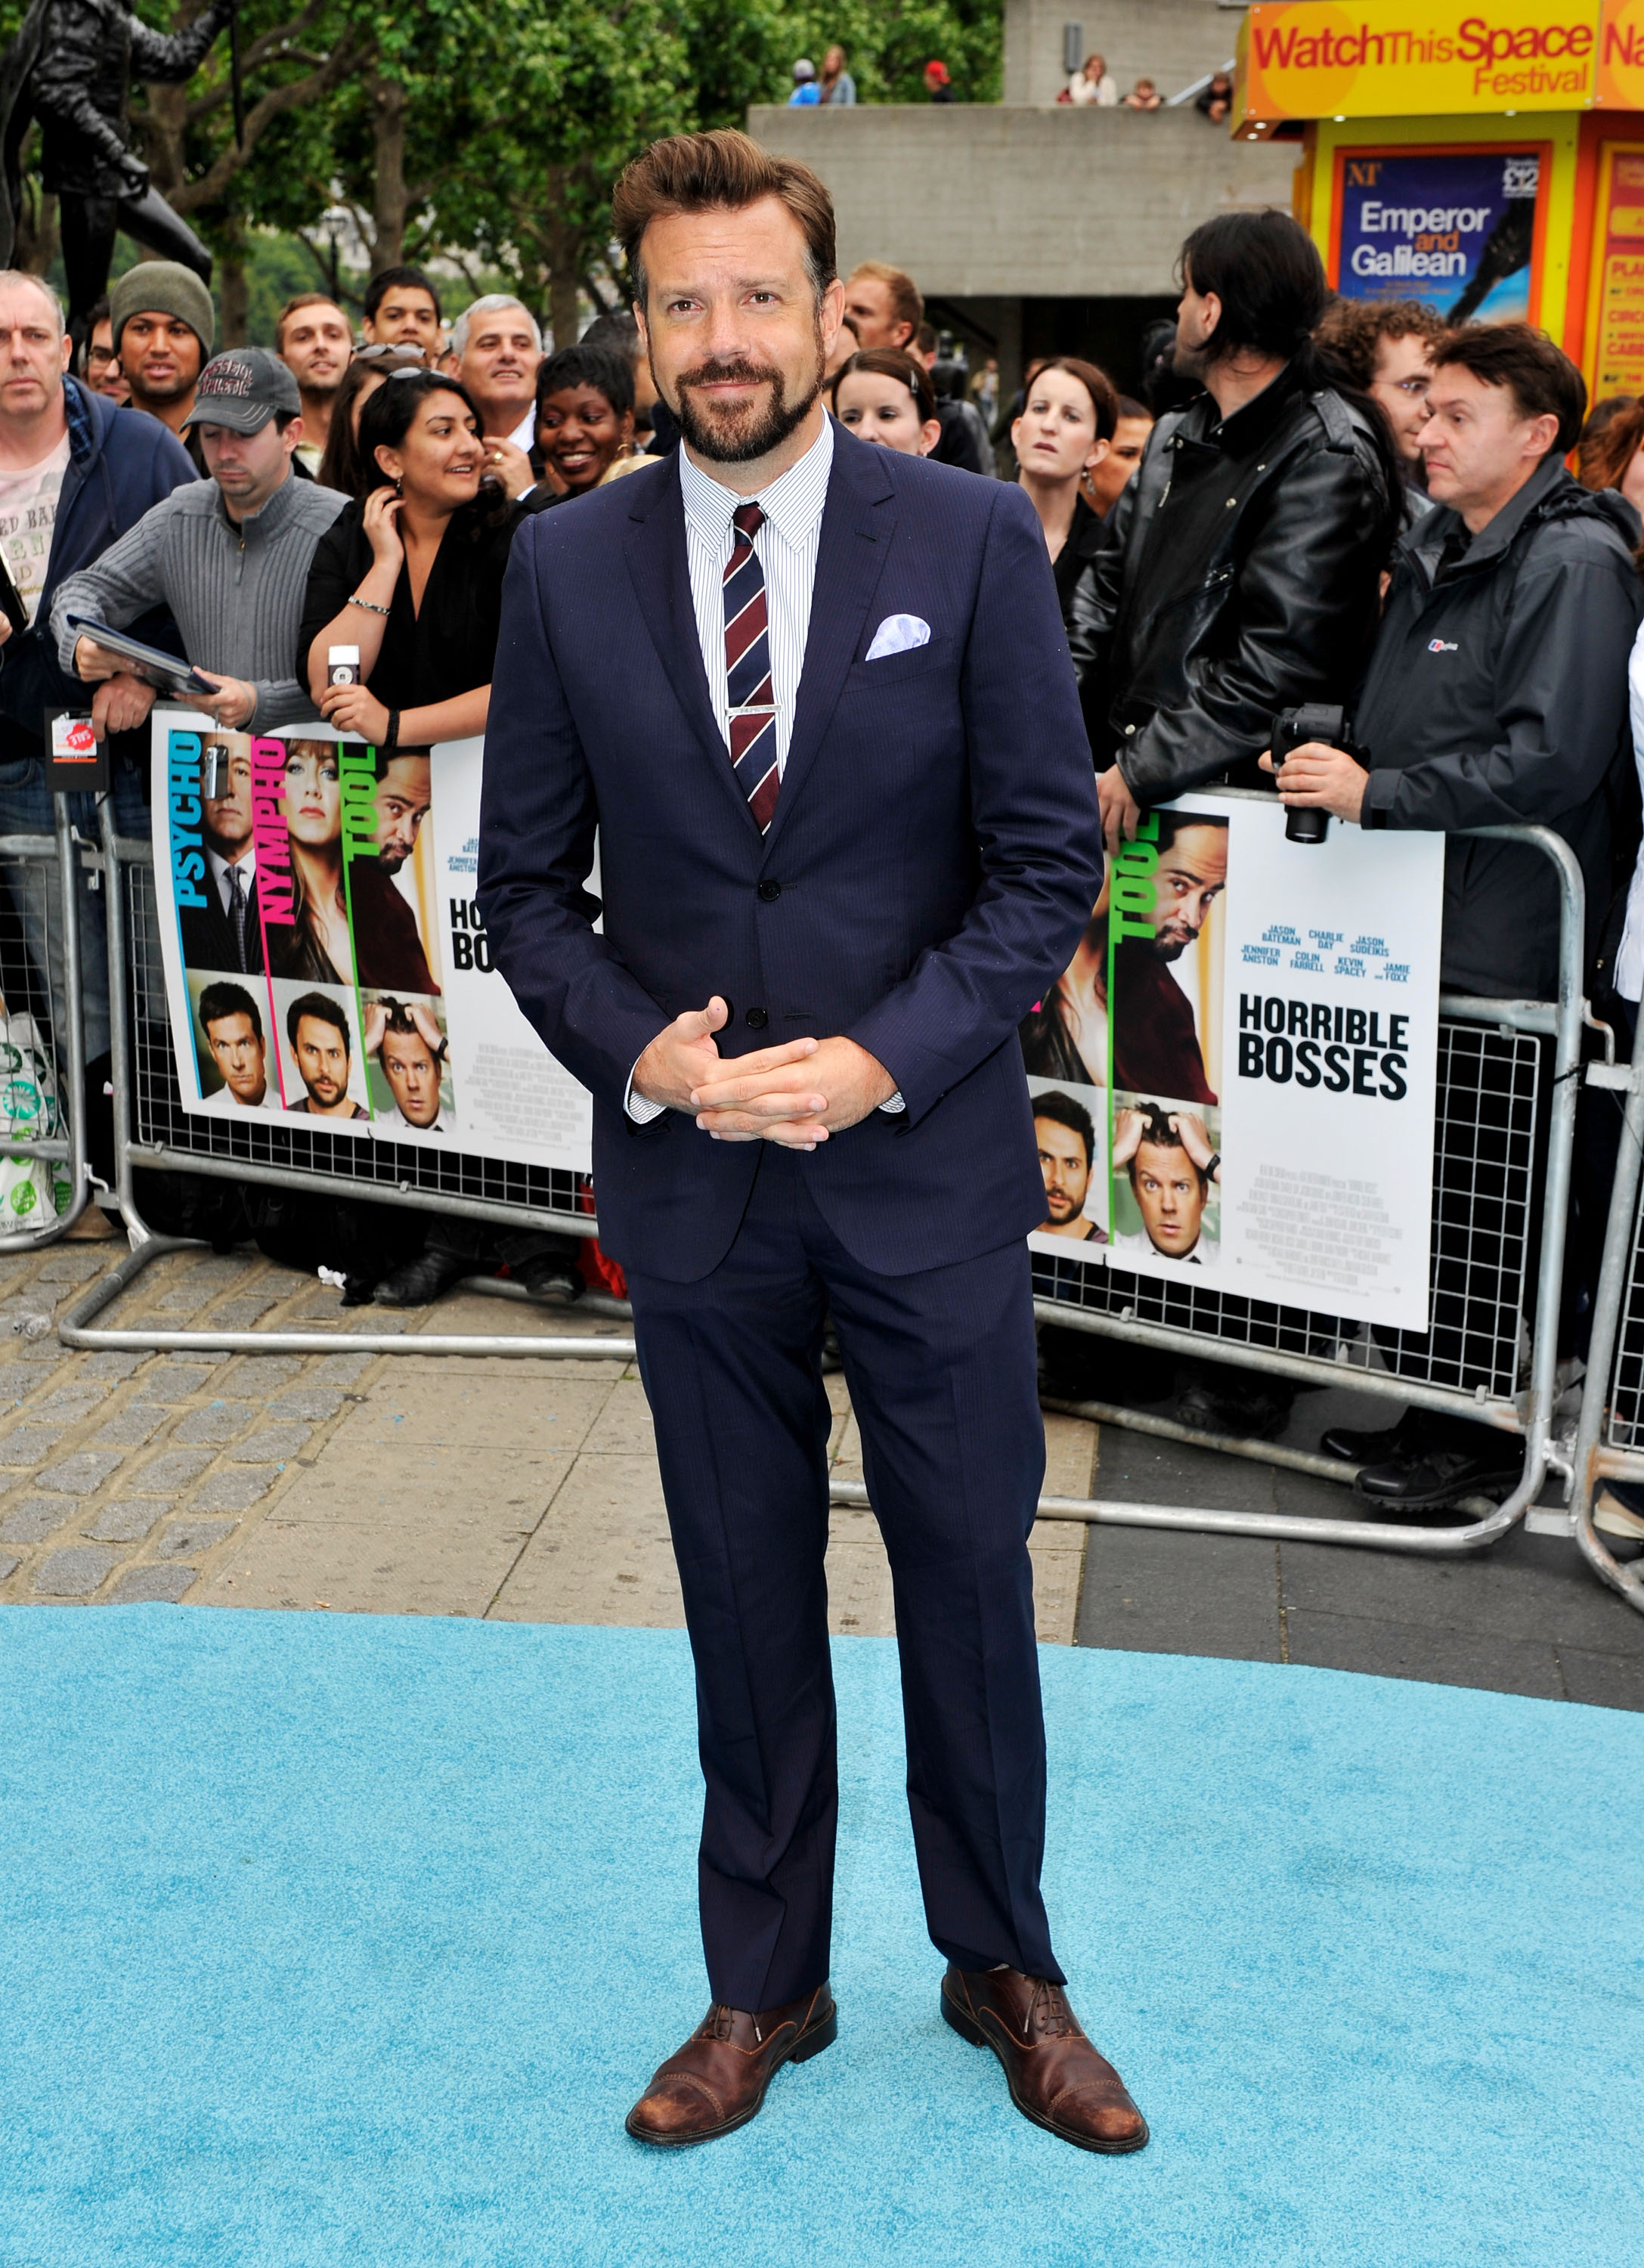 Jason Sudeikis in a suit.